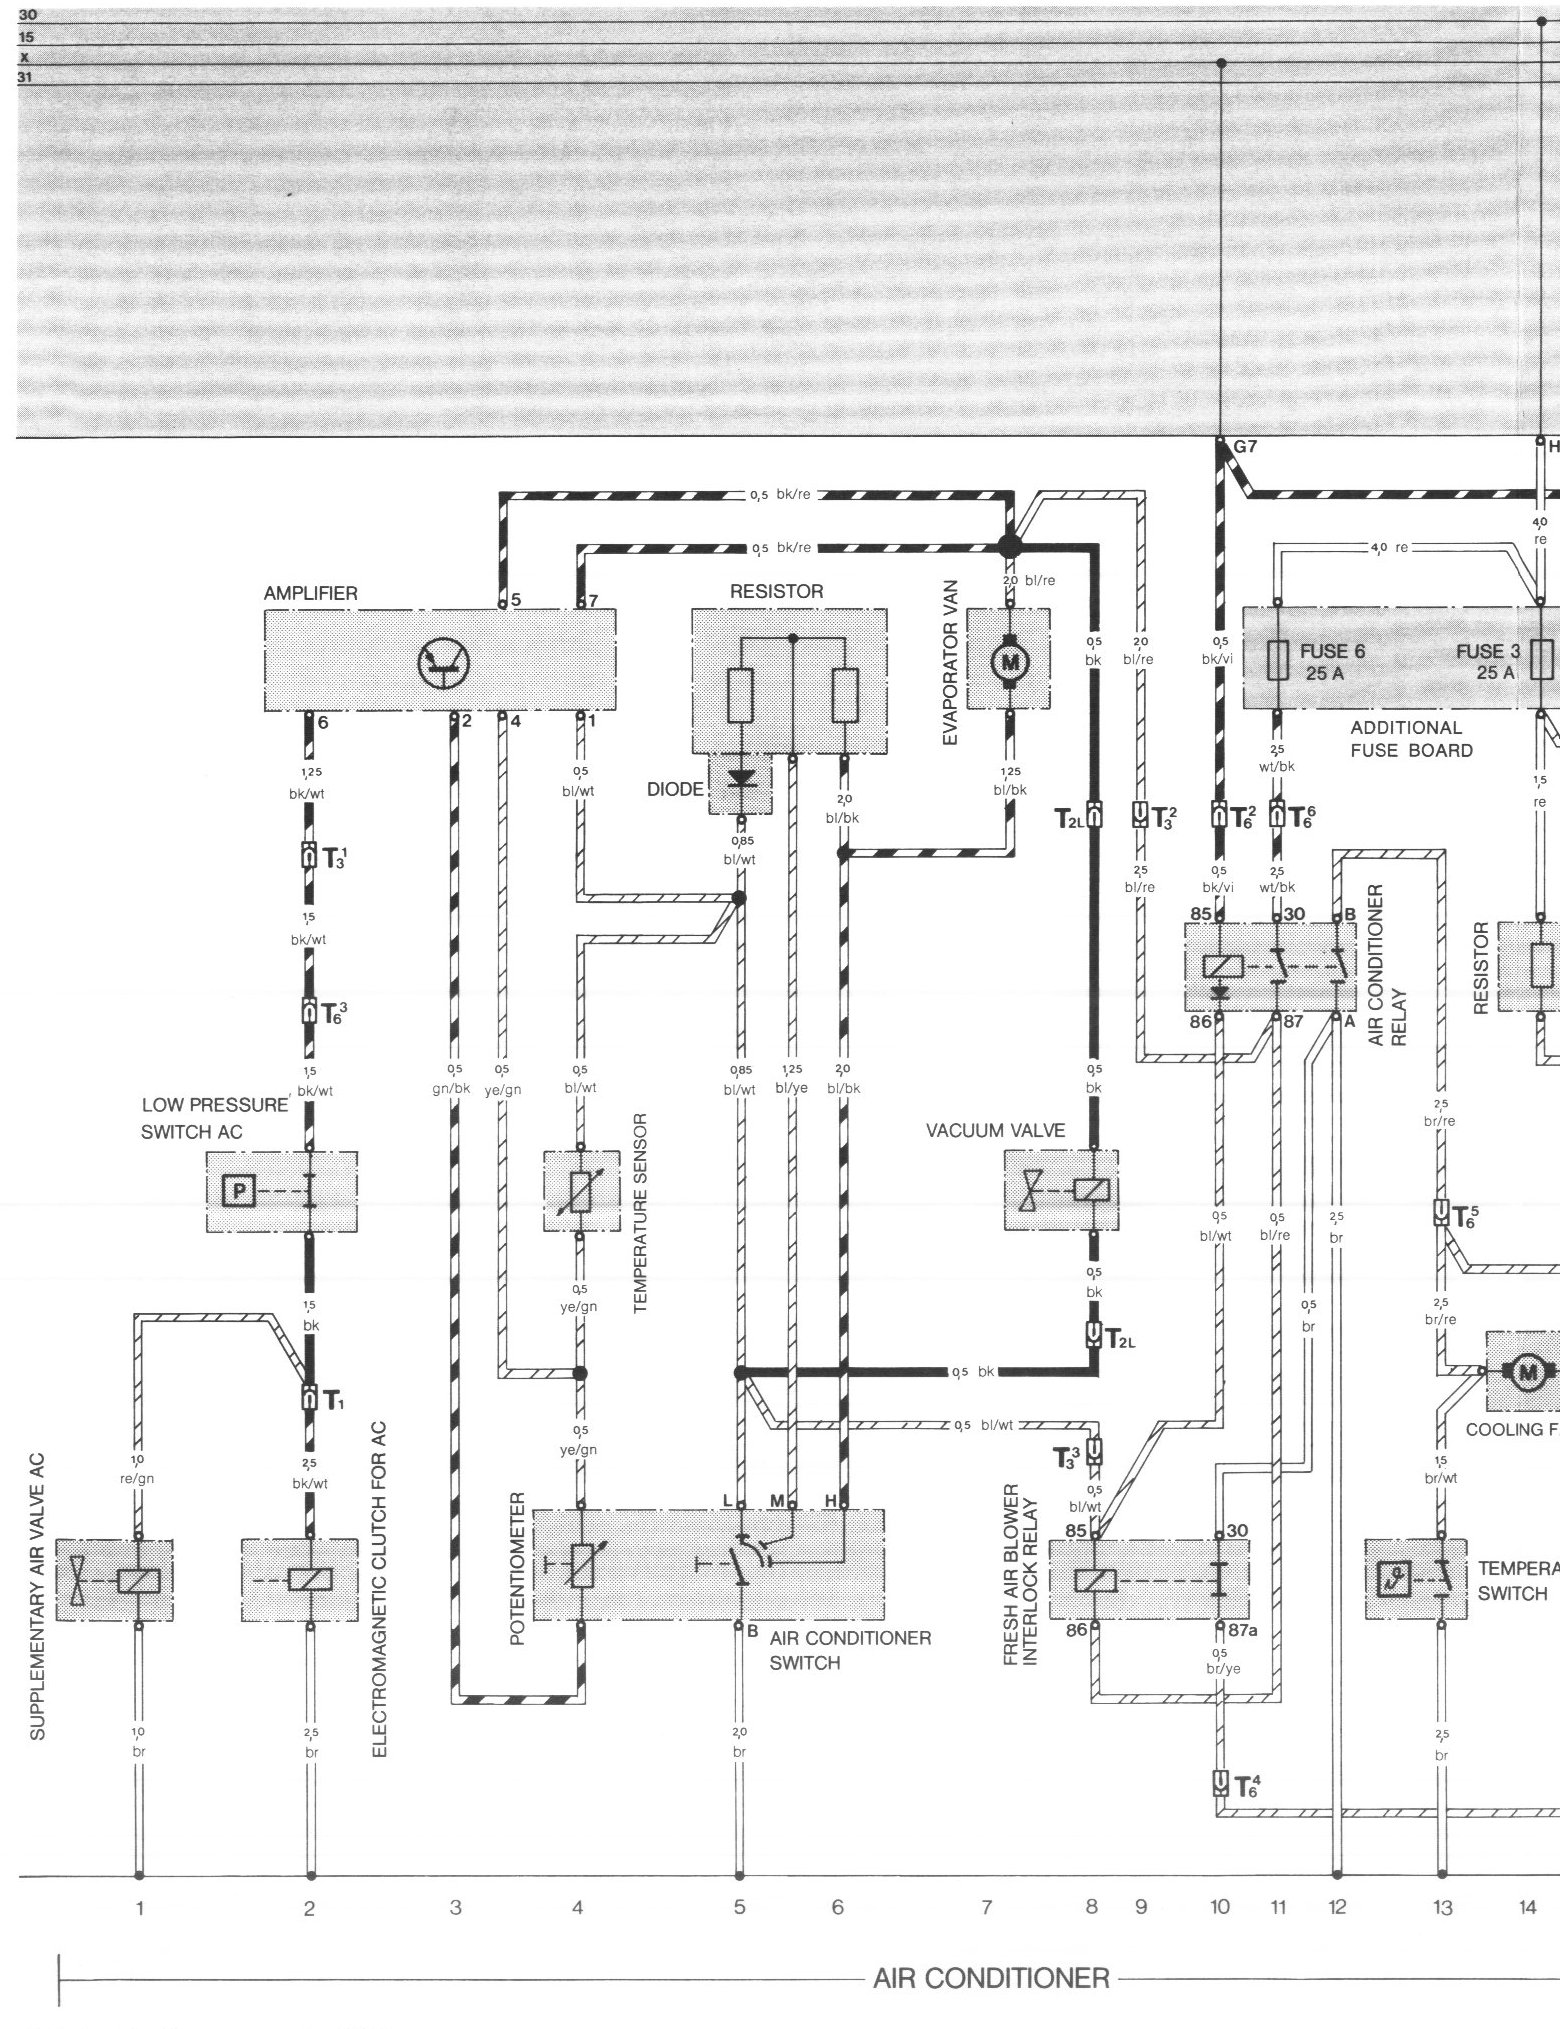 Lovely 1984 Porsche 944 Engine Wiring Diagram Ideas - Electrical ...